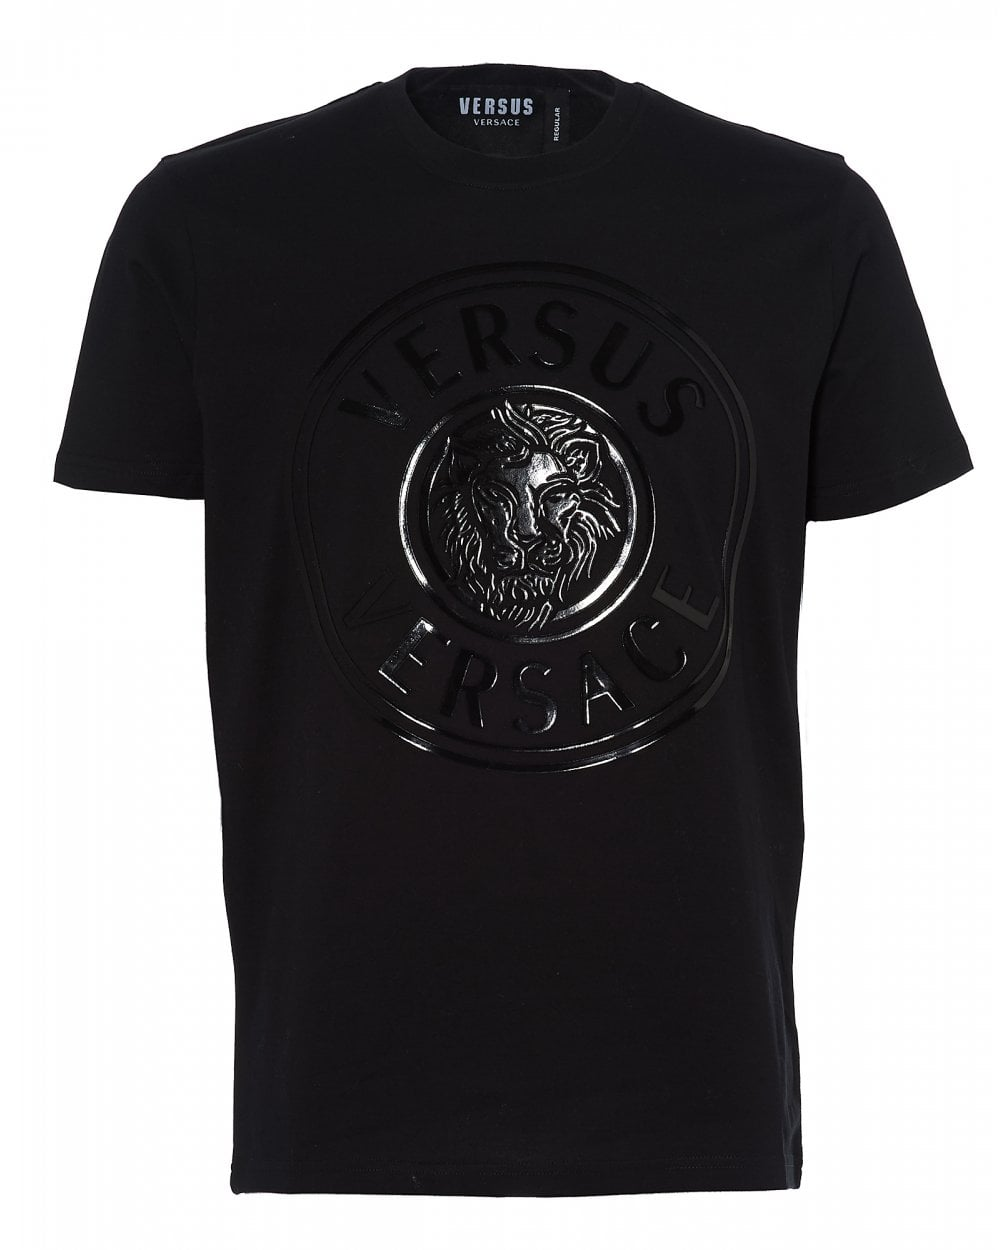 cbf5786b89c688 Versus Versace Mens Rubberised Lions Head T-Shirt, Black Tee